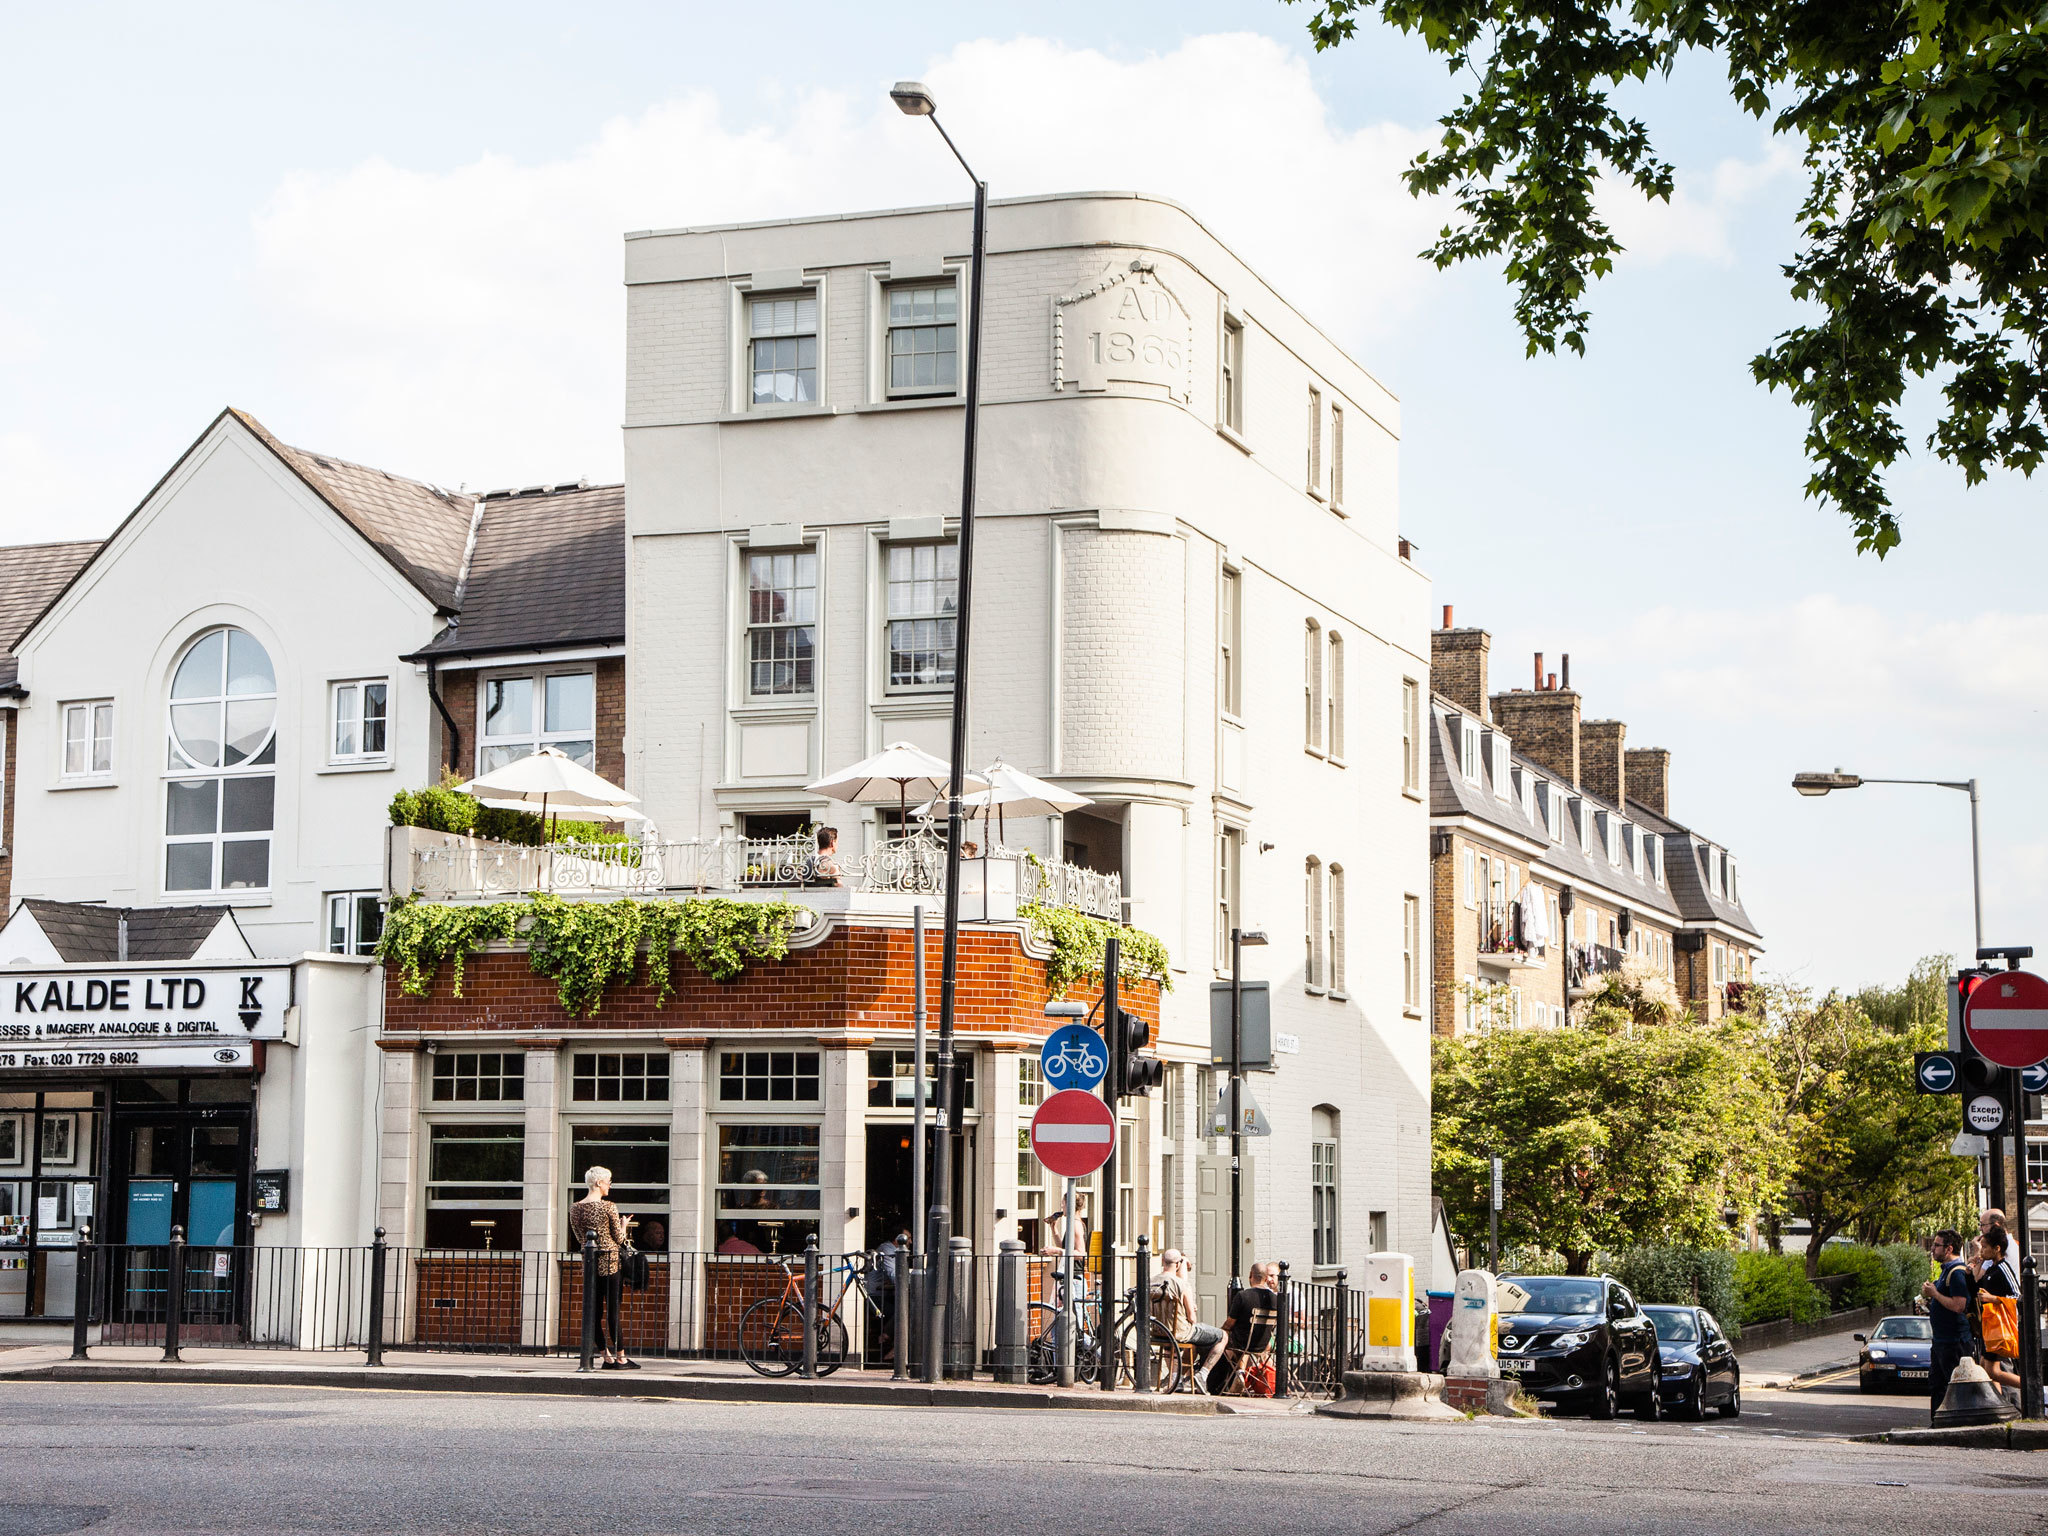 16 great things to do on Hackney Road